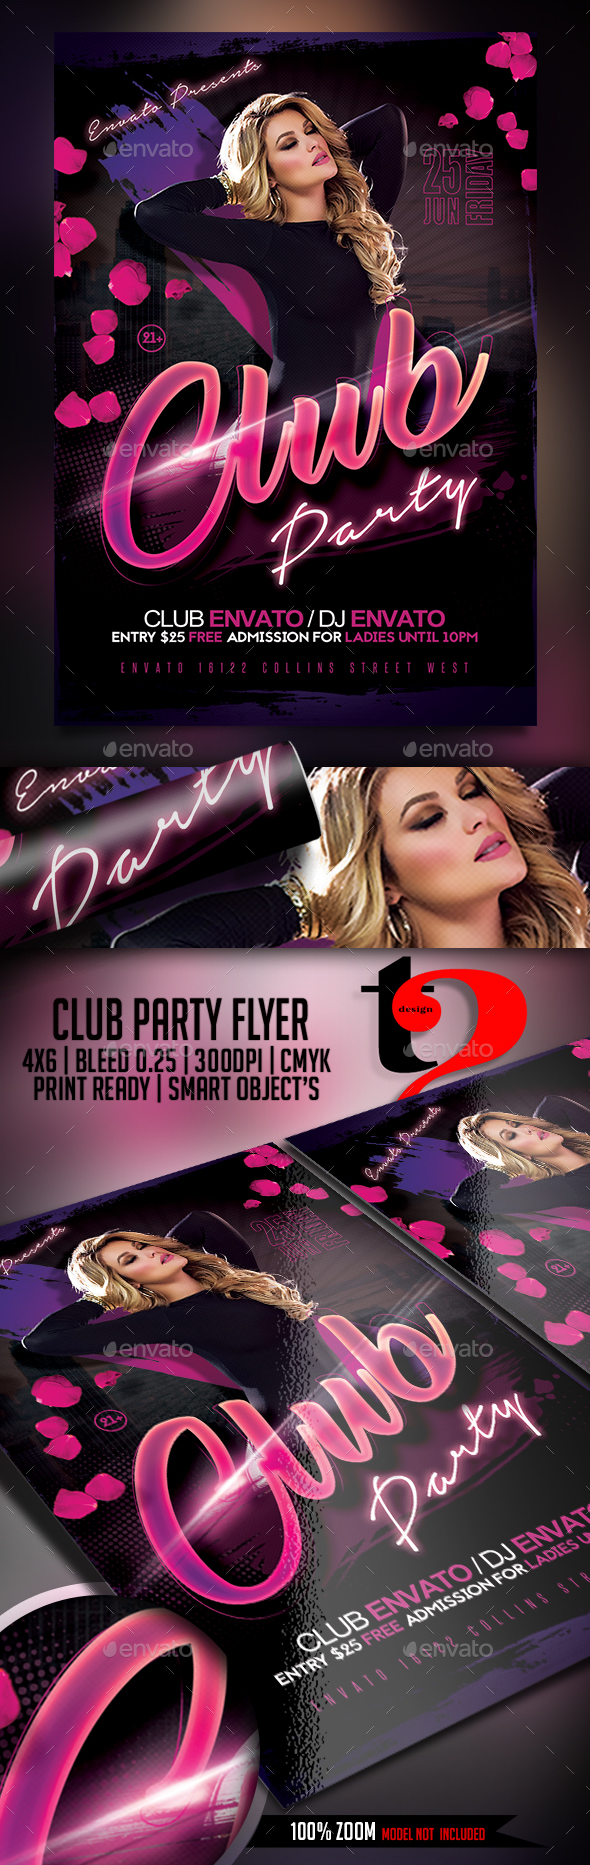 Club Party Flyer Template - Clubs & Parties Events